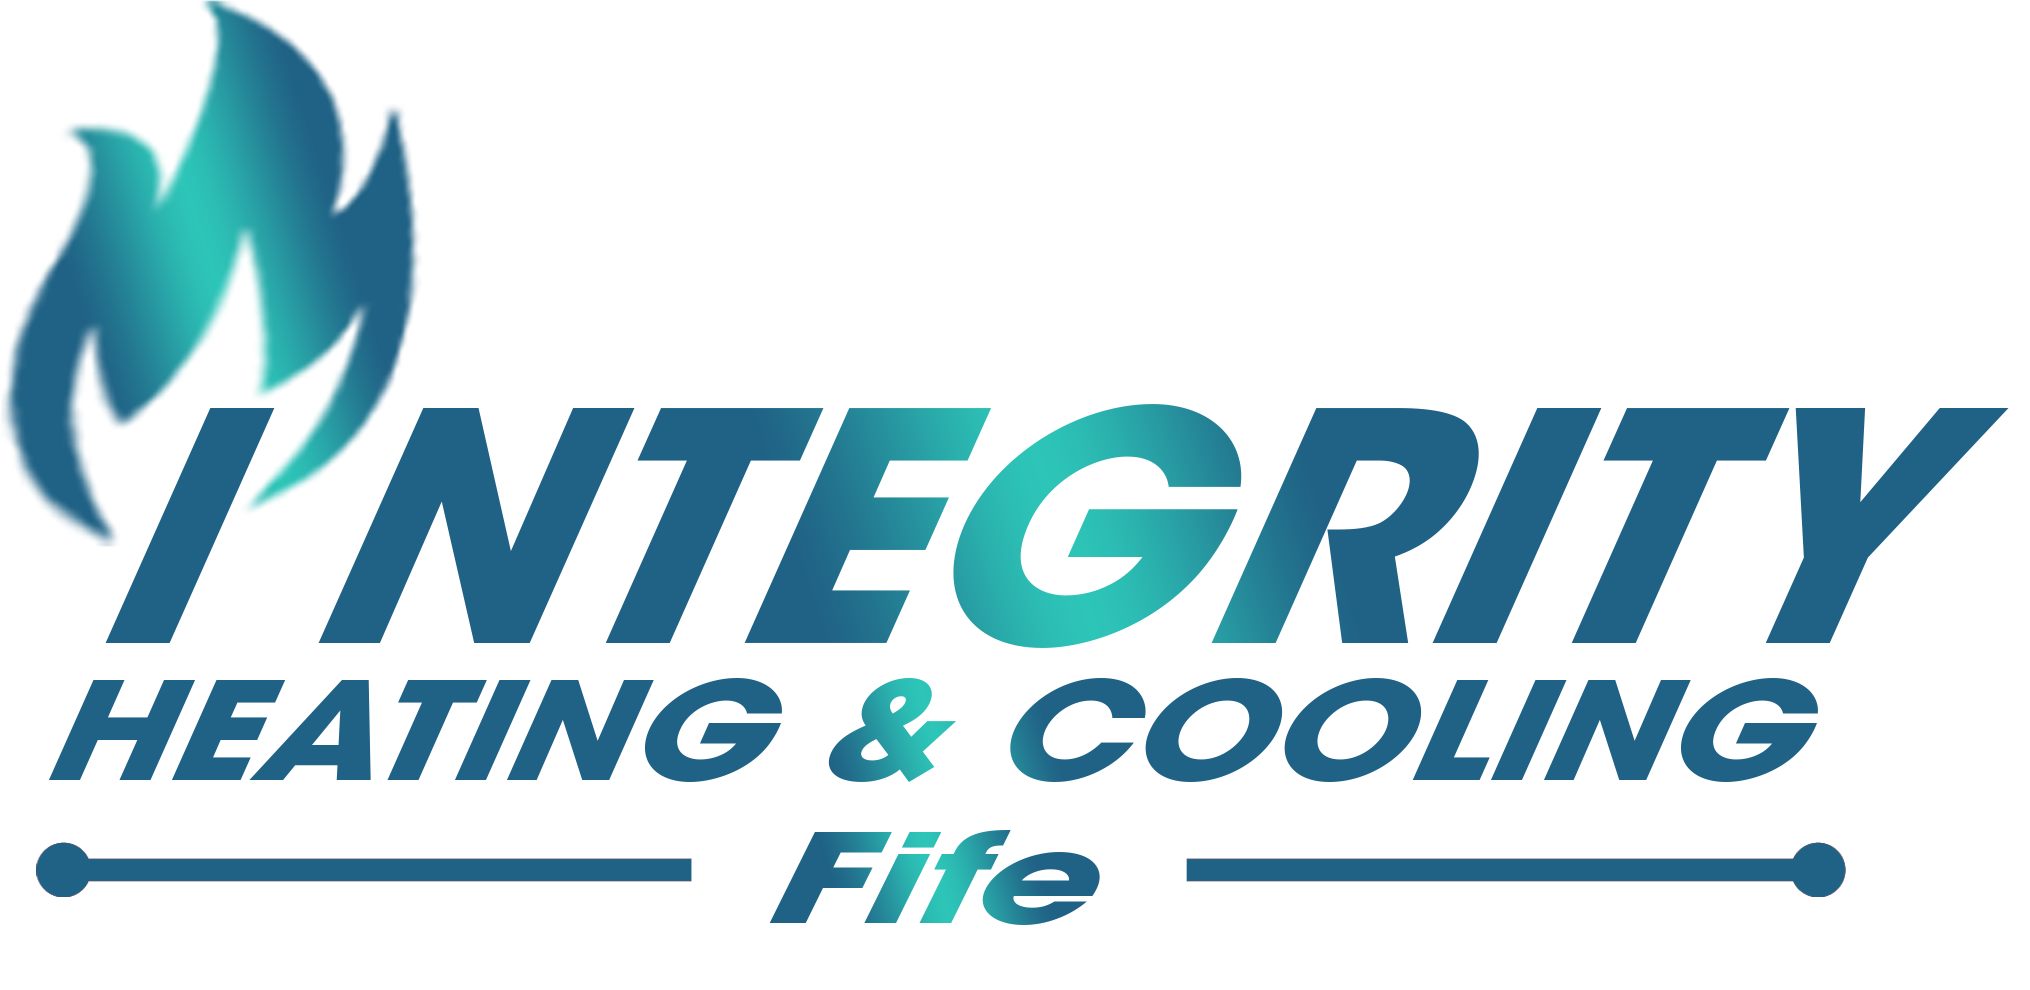 Integrity Heating And Cooling Fife Has Built A Staff Of Licensed